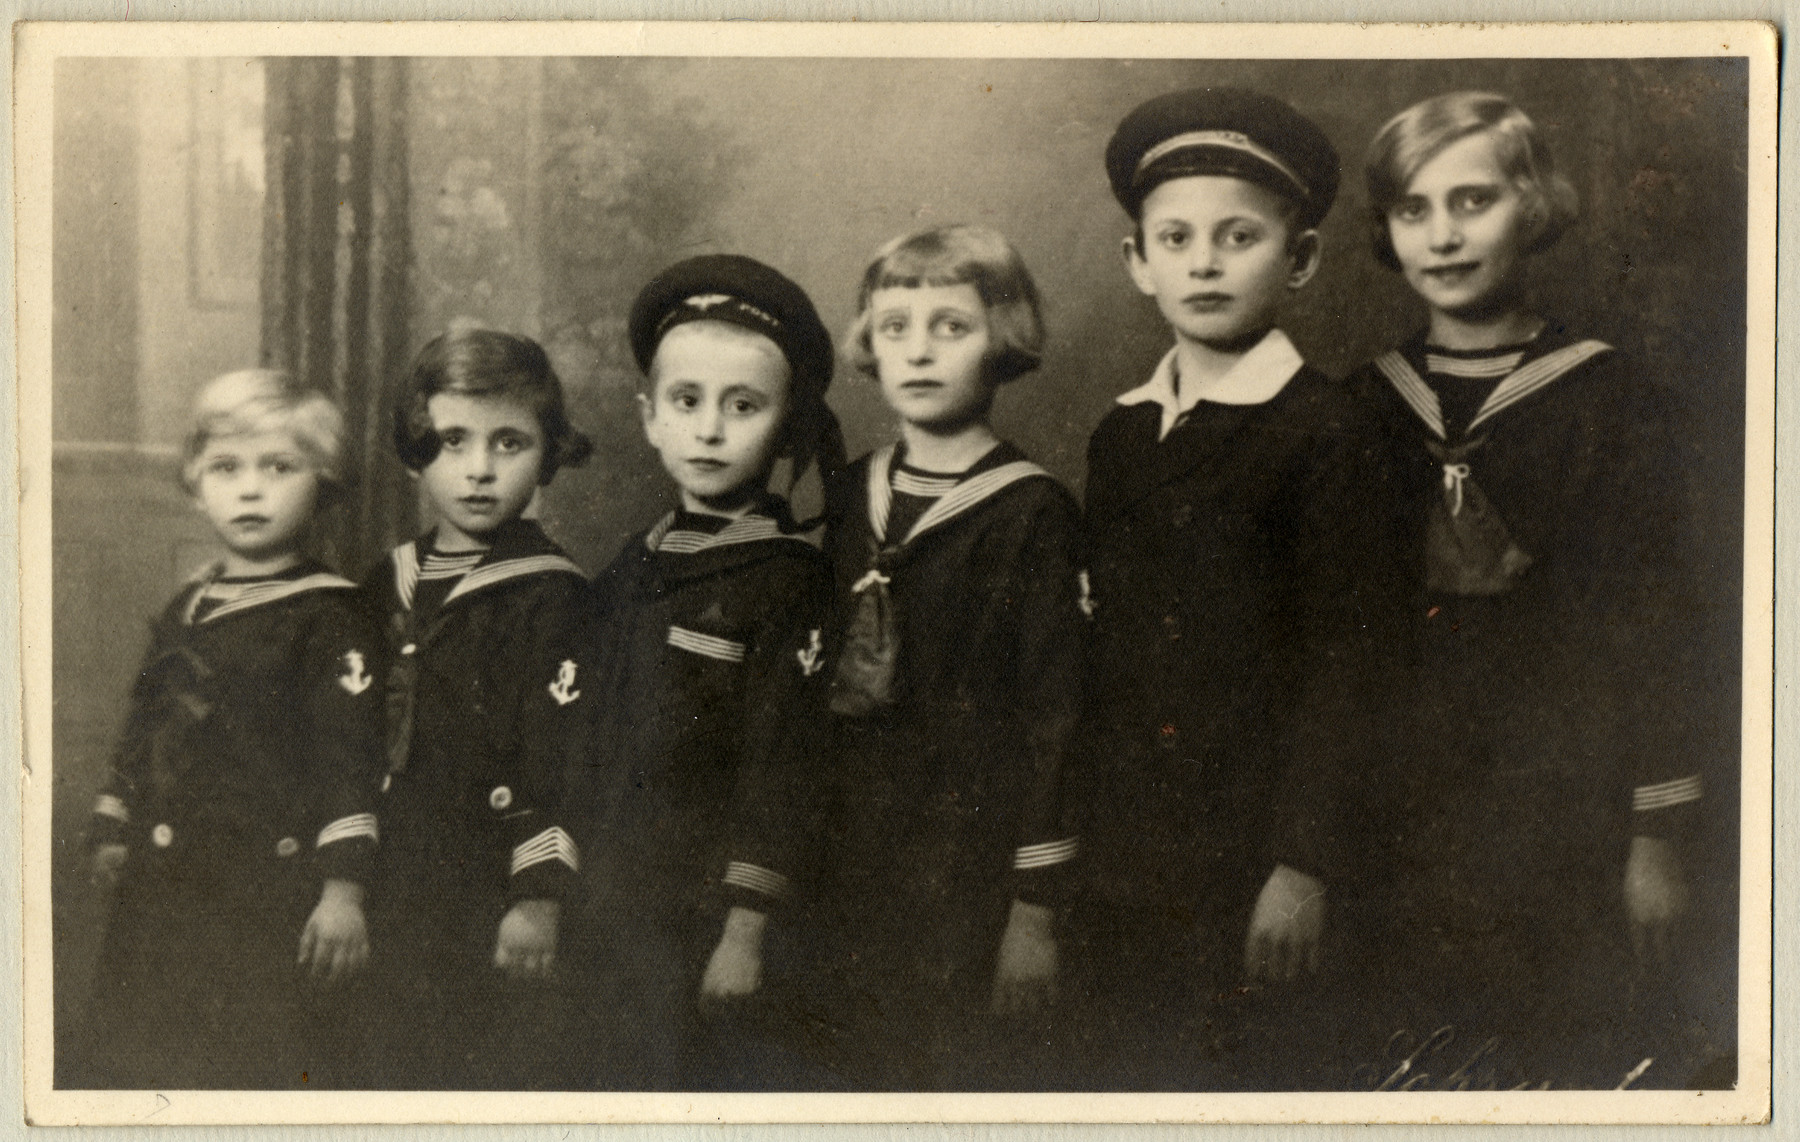 Studio portrait of the Kuttner children, dressed in matching sailor suits.  From left to right are Edit, Rose, Marcel, Sara, Jozsef and Gyongyi Kuttner.